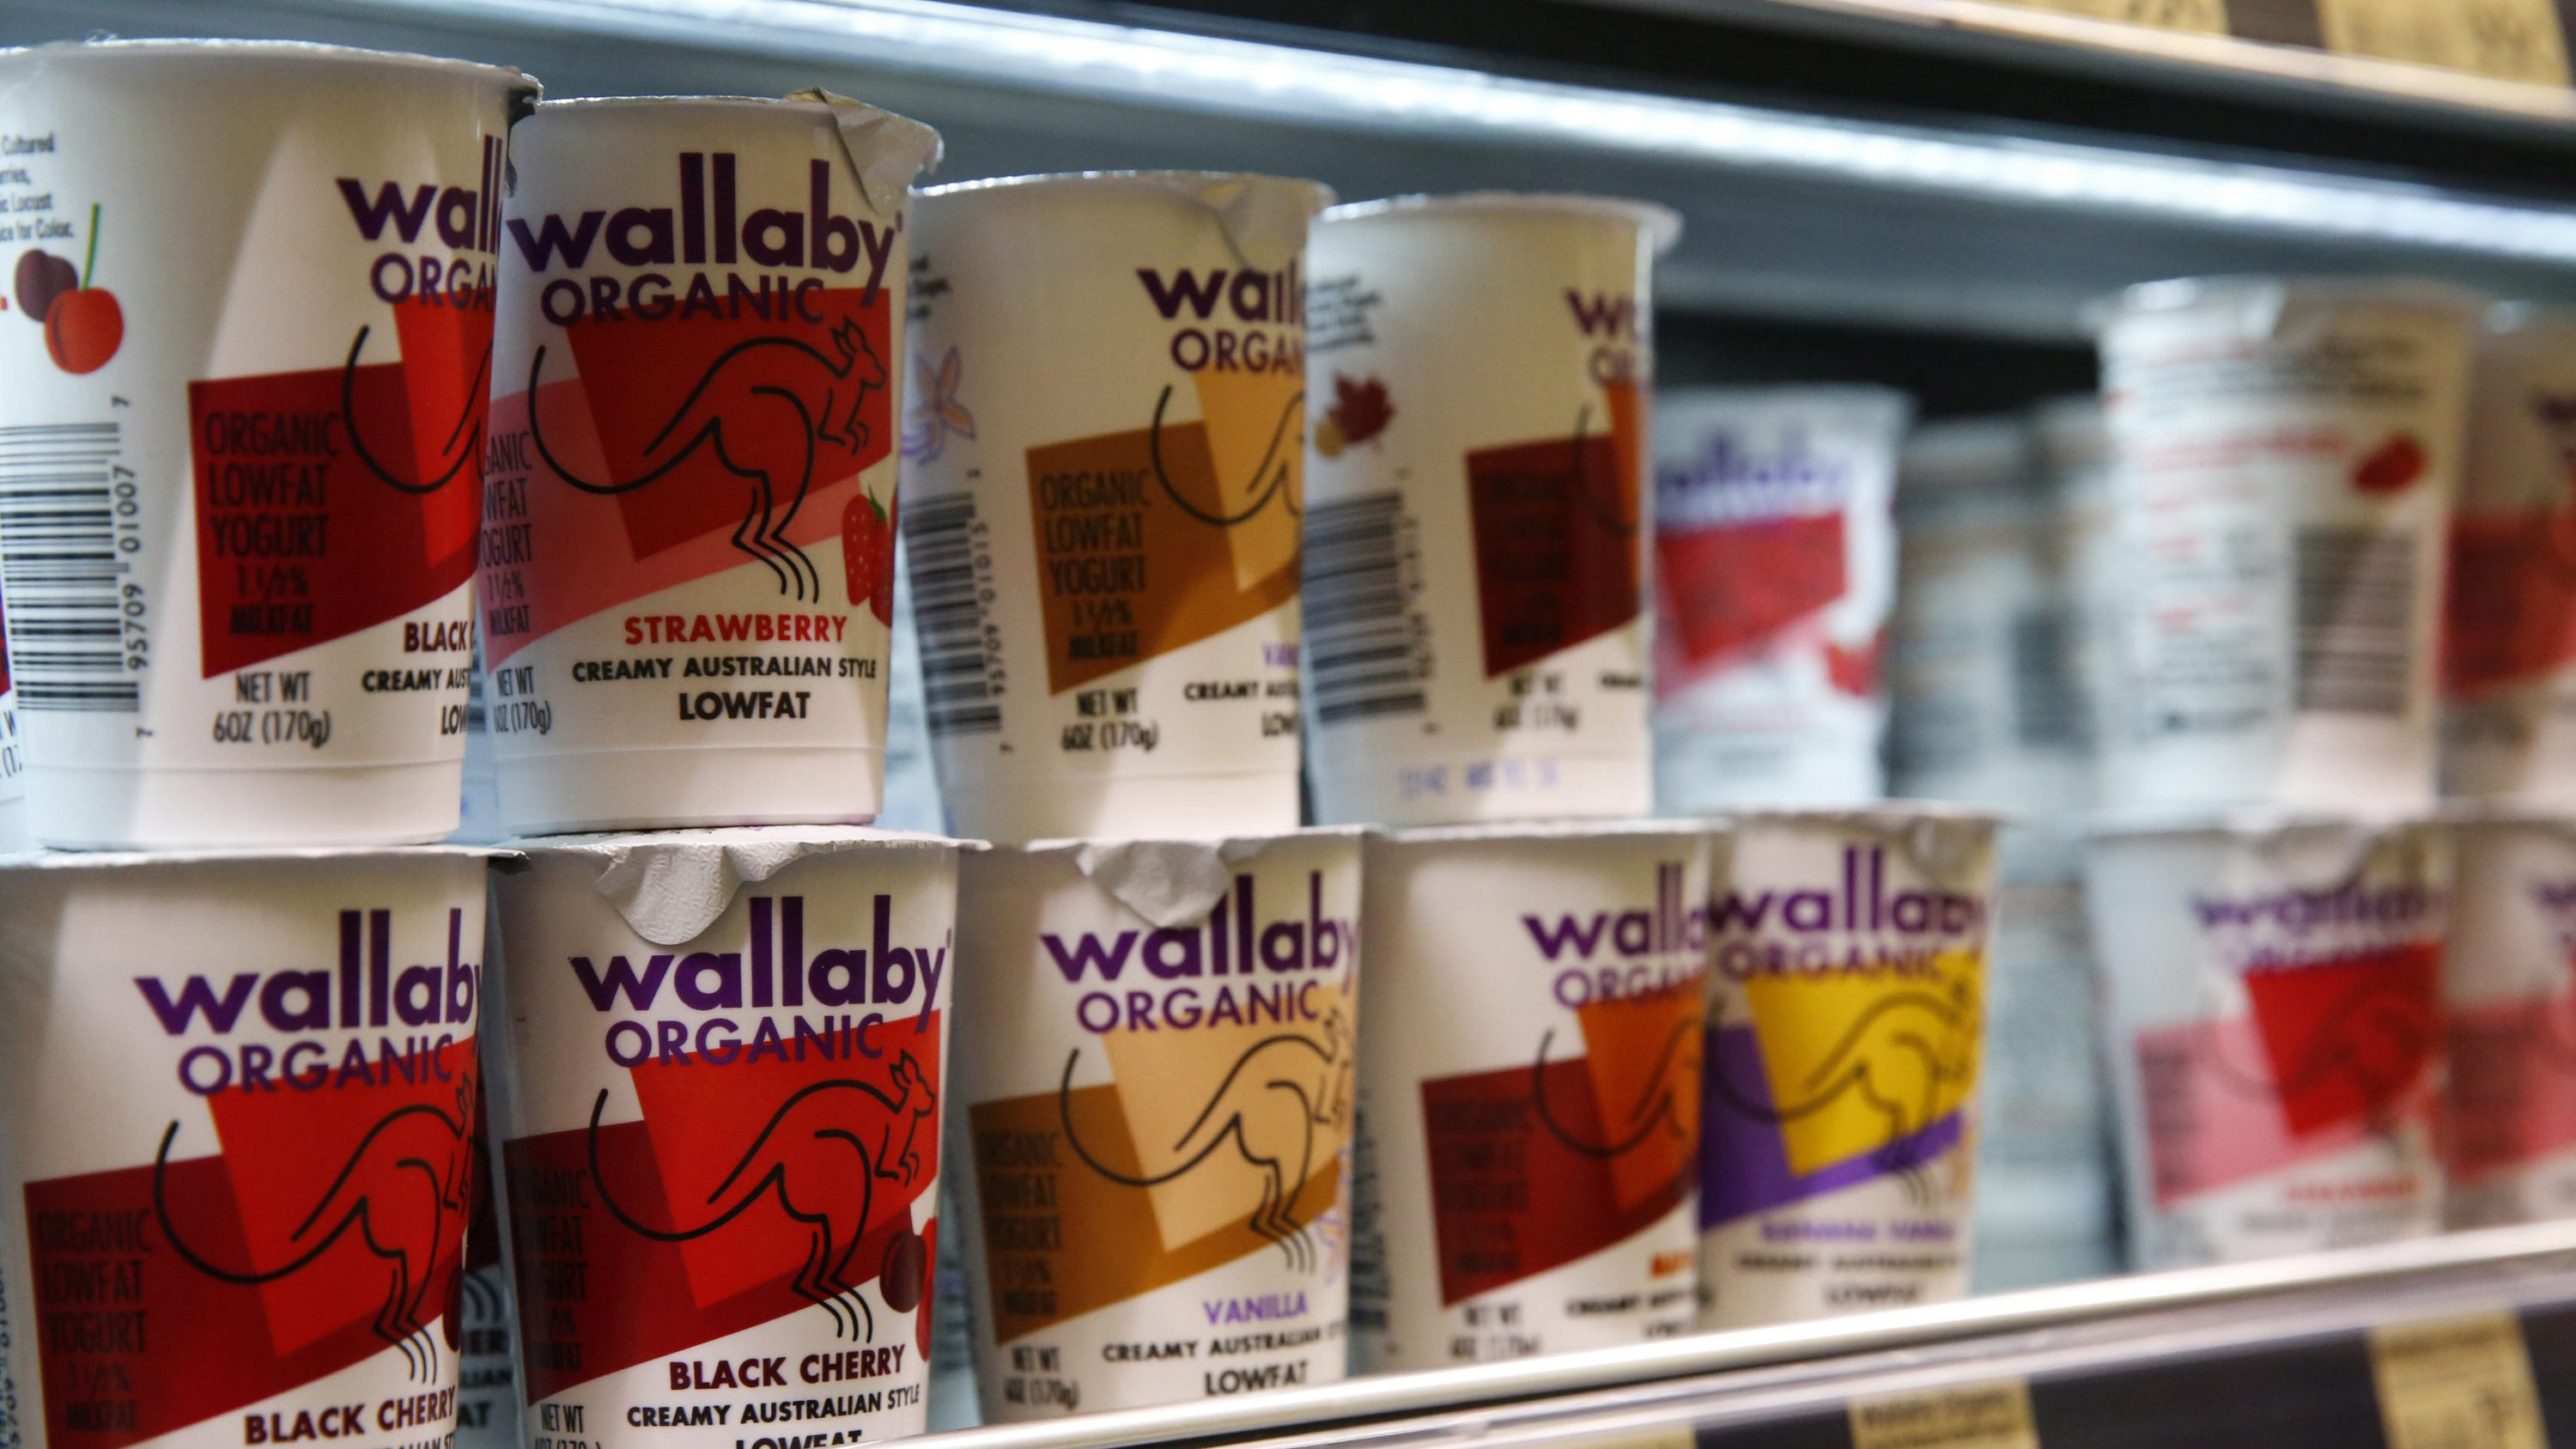 Yogurt made by the WhiteWave brand Wallaby Organic is in stock at Alfalfa's Market, a locally-owned and independent grocery store in Boulder, Colo., Thursday, July 7, 2016. Yogurt giant Danone says it reached a $10 billion deal to buy Colorado-based American organic food maker WhiteWave, expanding the French company's foothold in health foods and the U.S. market. Paris-based Danone said in a statement Thursday that it is paying $56.25 per share in the deal, 24 percent above WhiteWave's average stock value over the previous month. (AP Photo/Brennan Linsley)